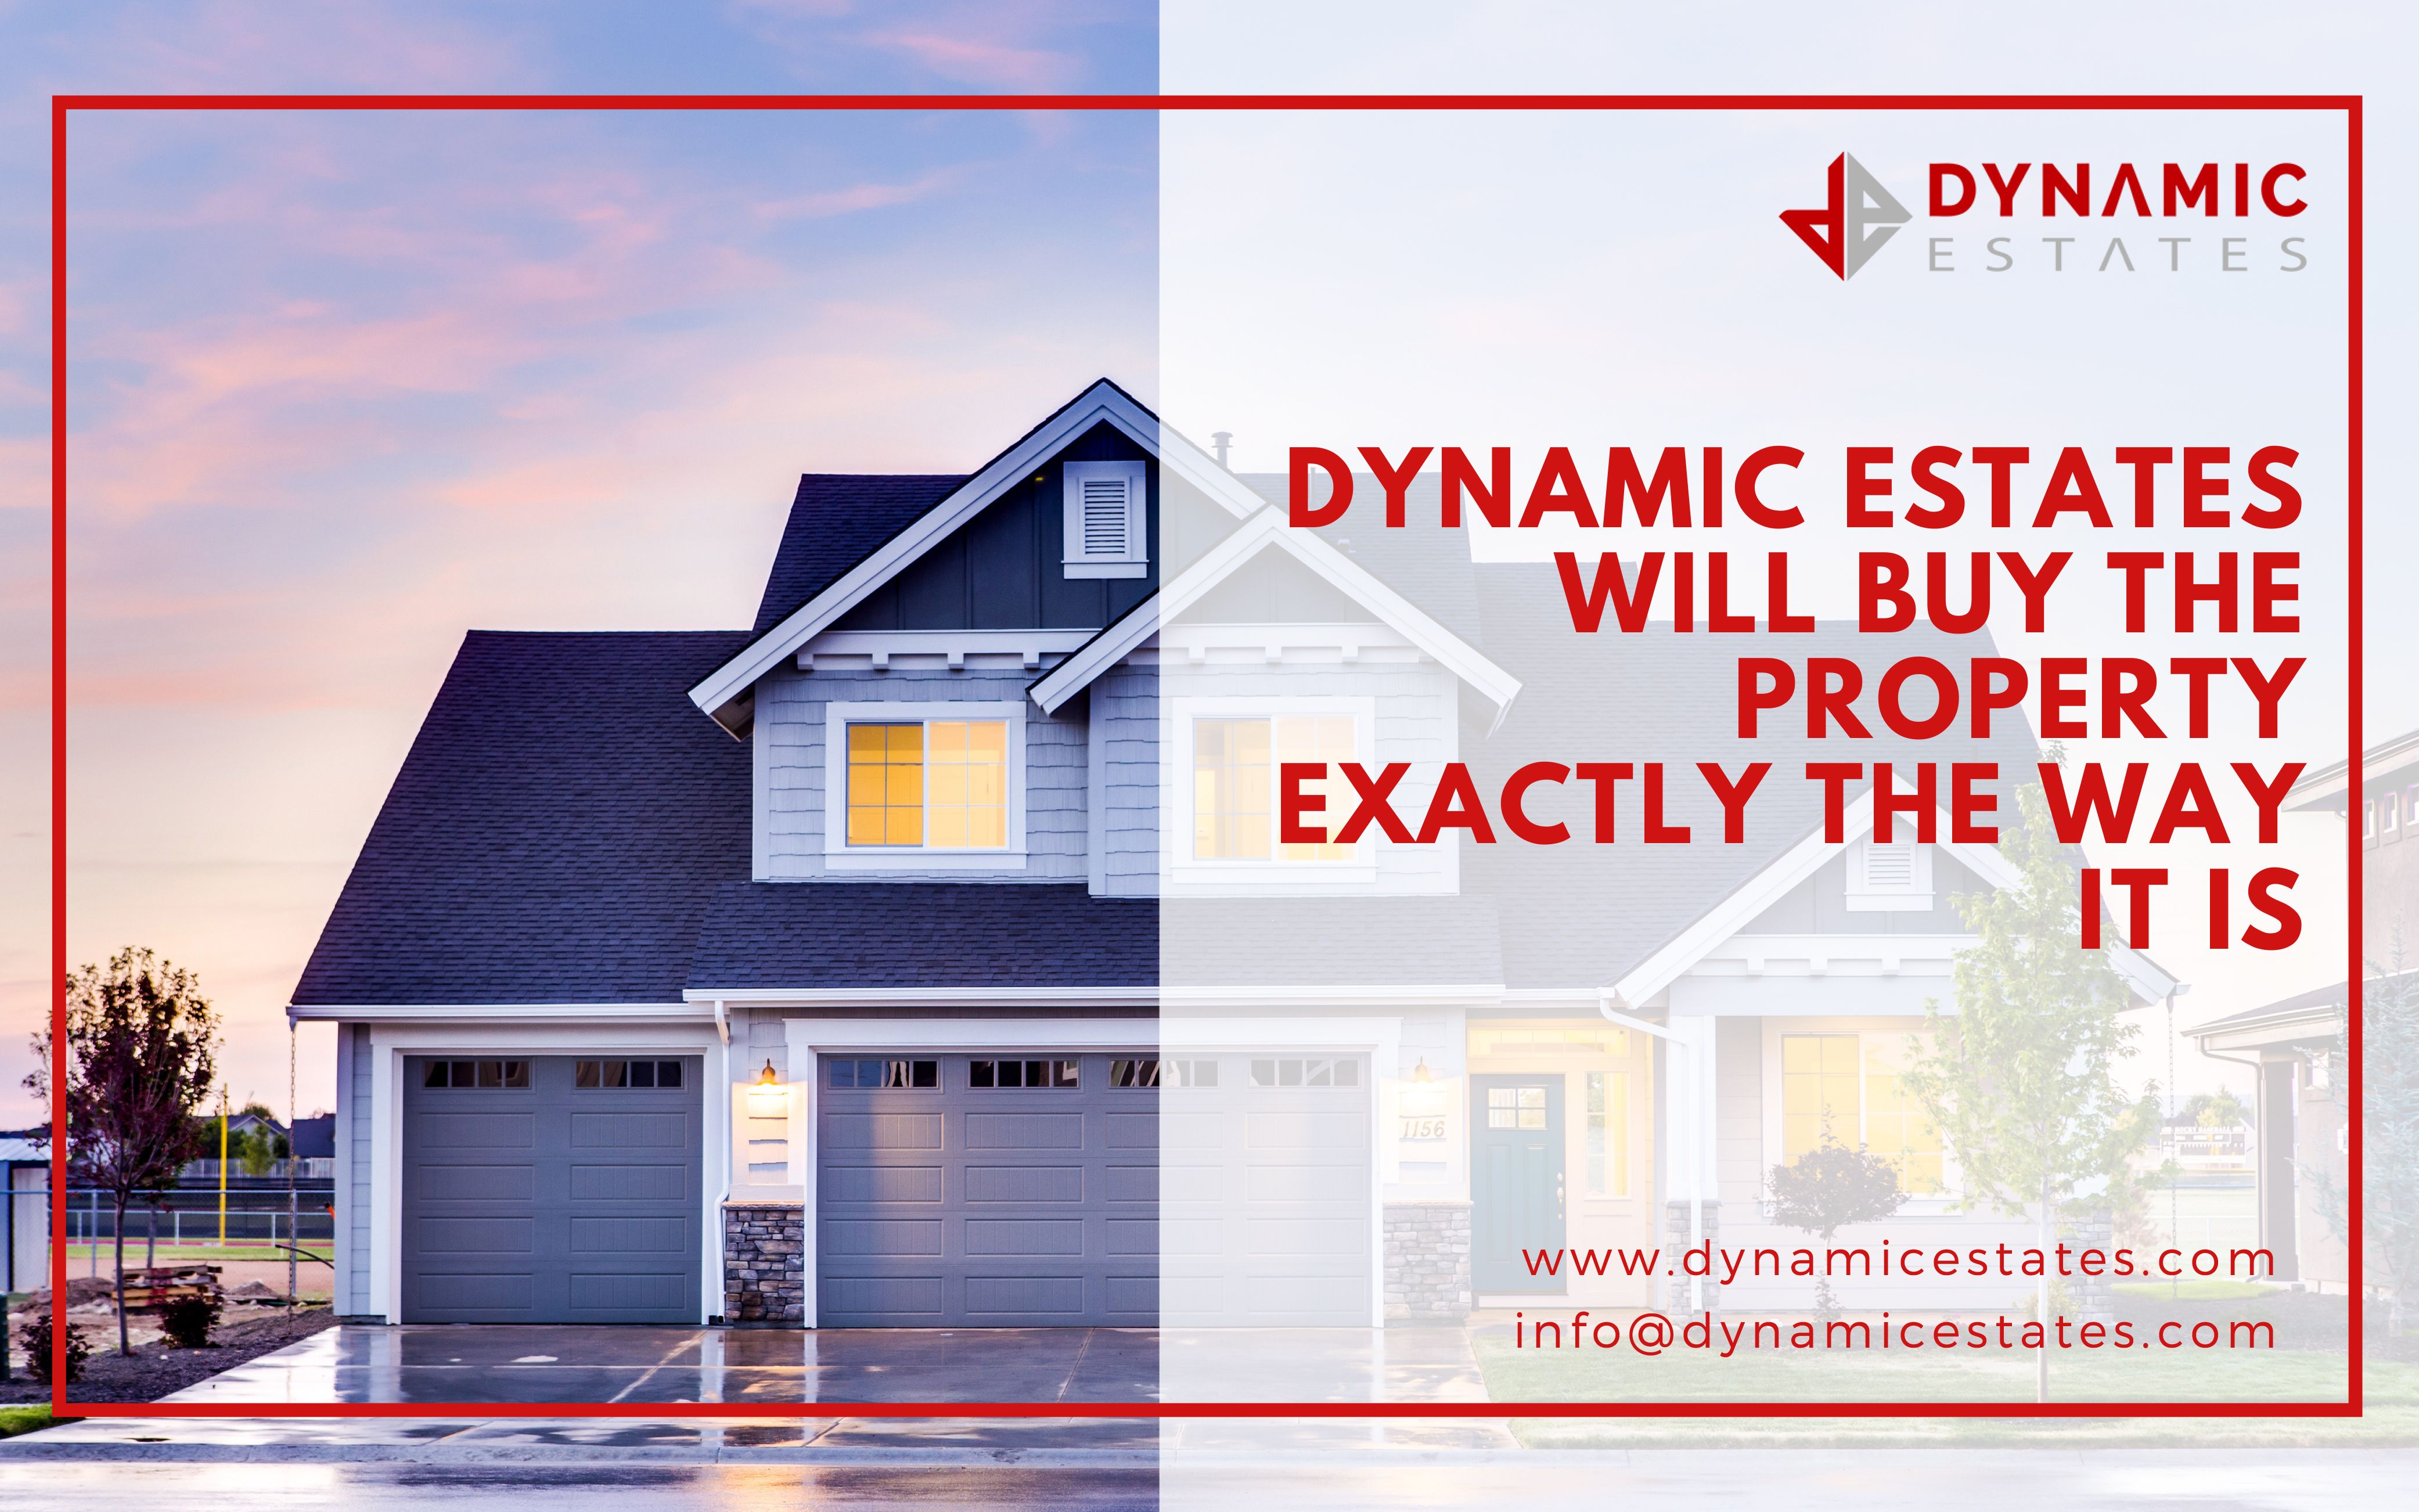 Dynamic Estates Buy My House For Cash Buy My House Sell Your House Fast We Buy Houses